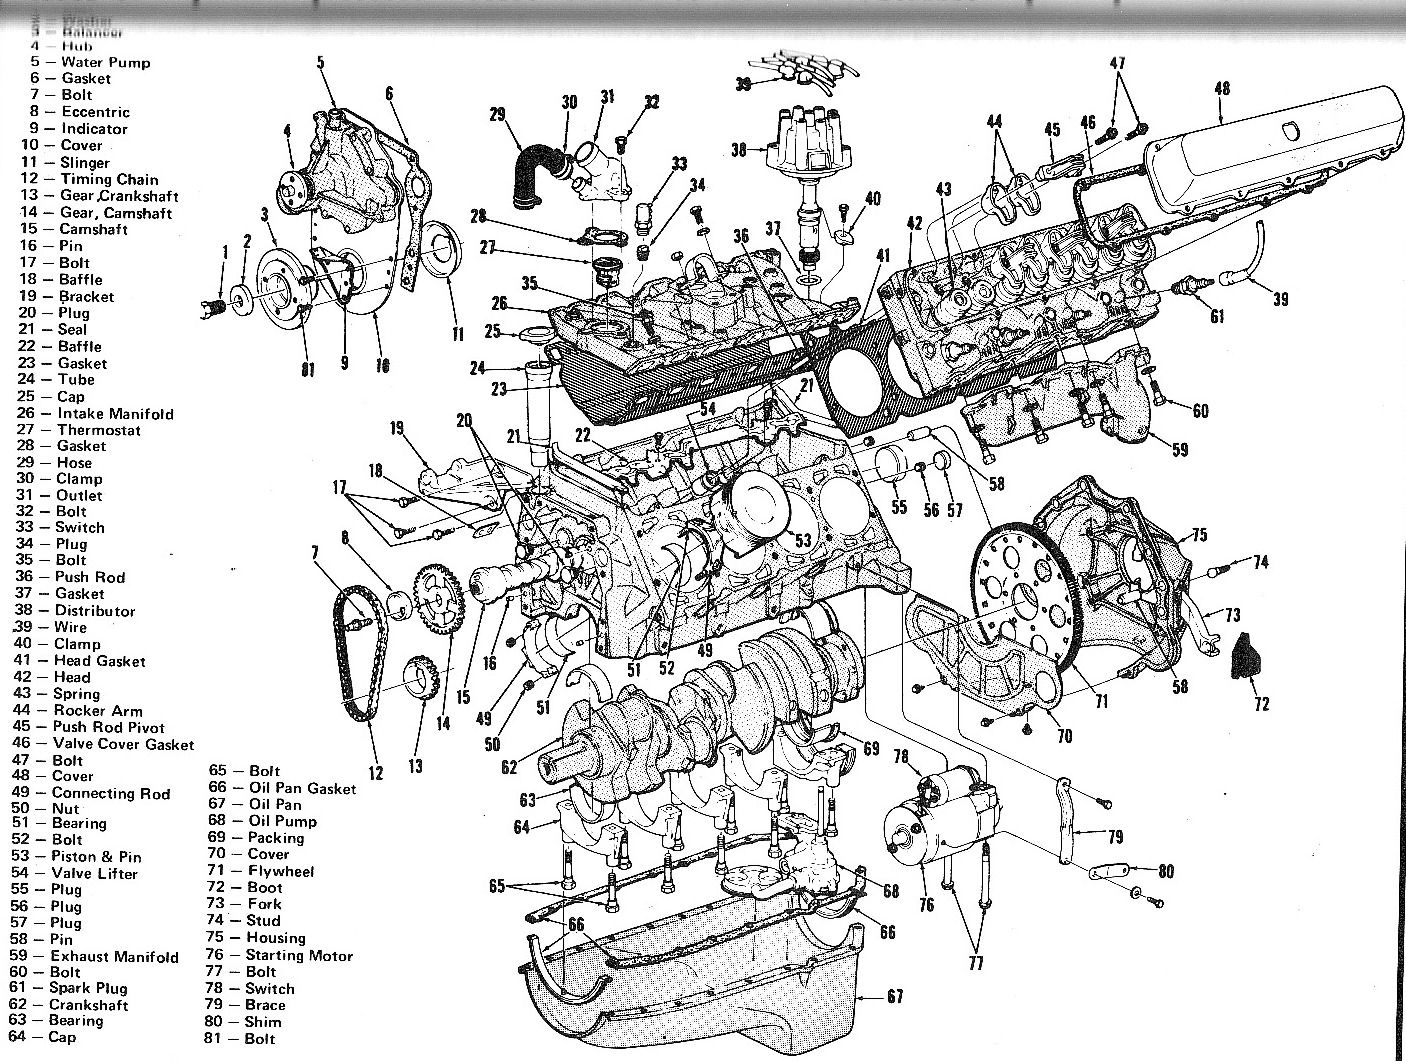 Complete V8 Engine Diagram | Engines, Transmissions 3D Lay out | Engineering, Cars